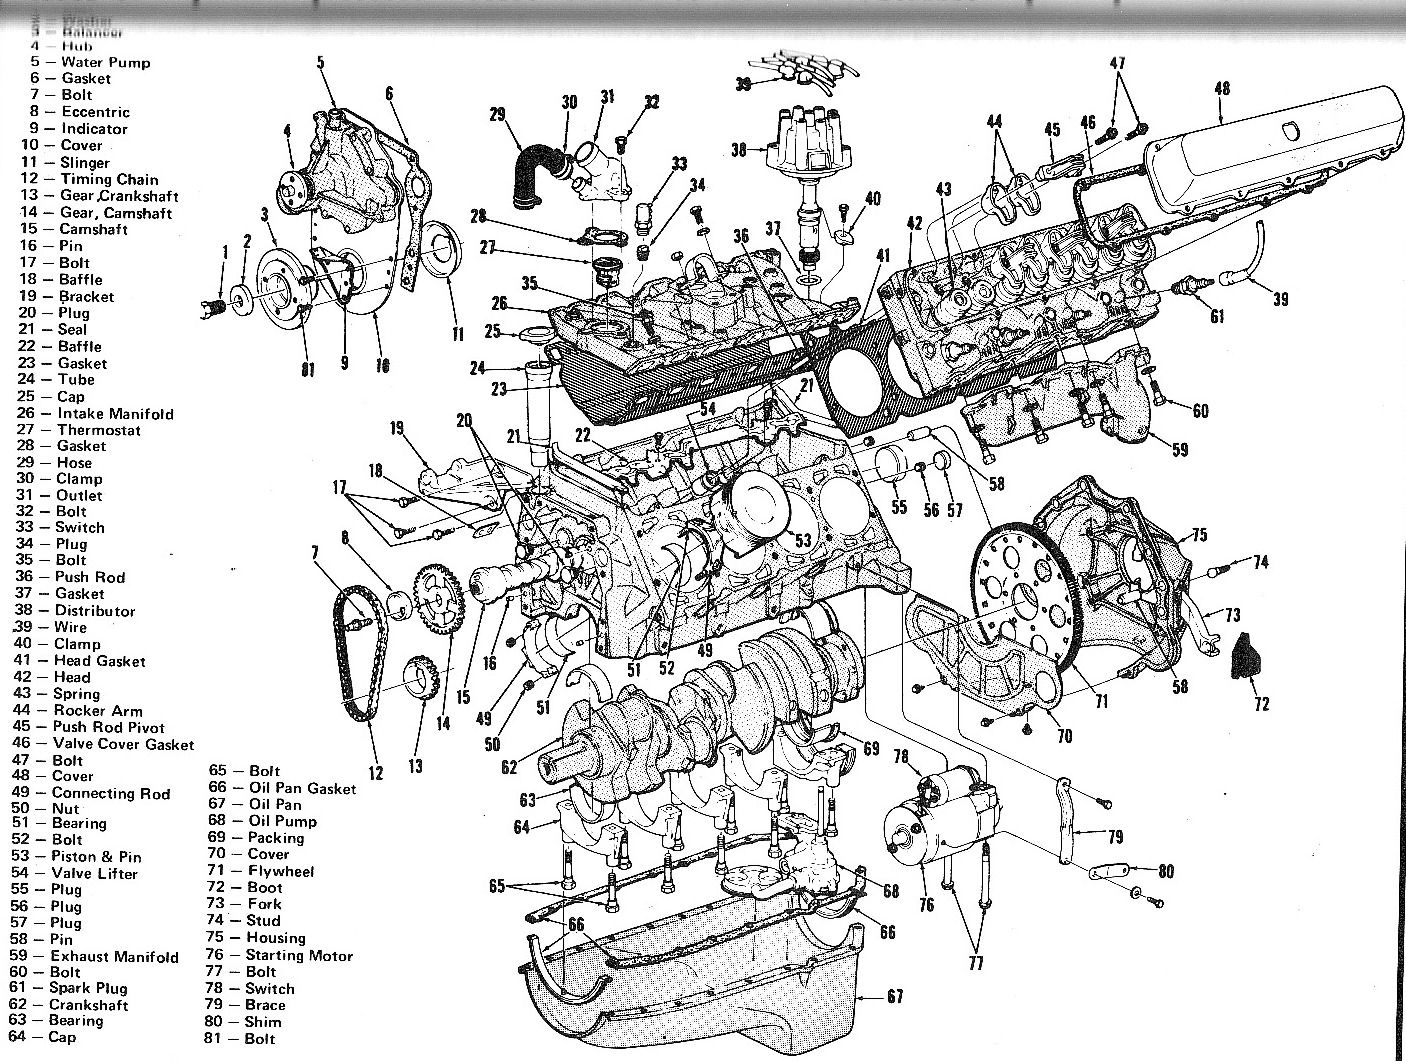 Complete V8 Engine Diagram | Engines, Transmissions 3D Lay out | Engineering, Cars